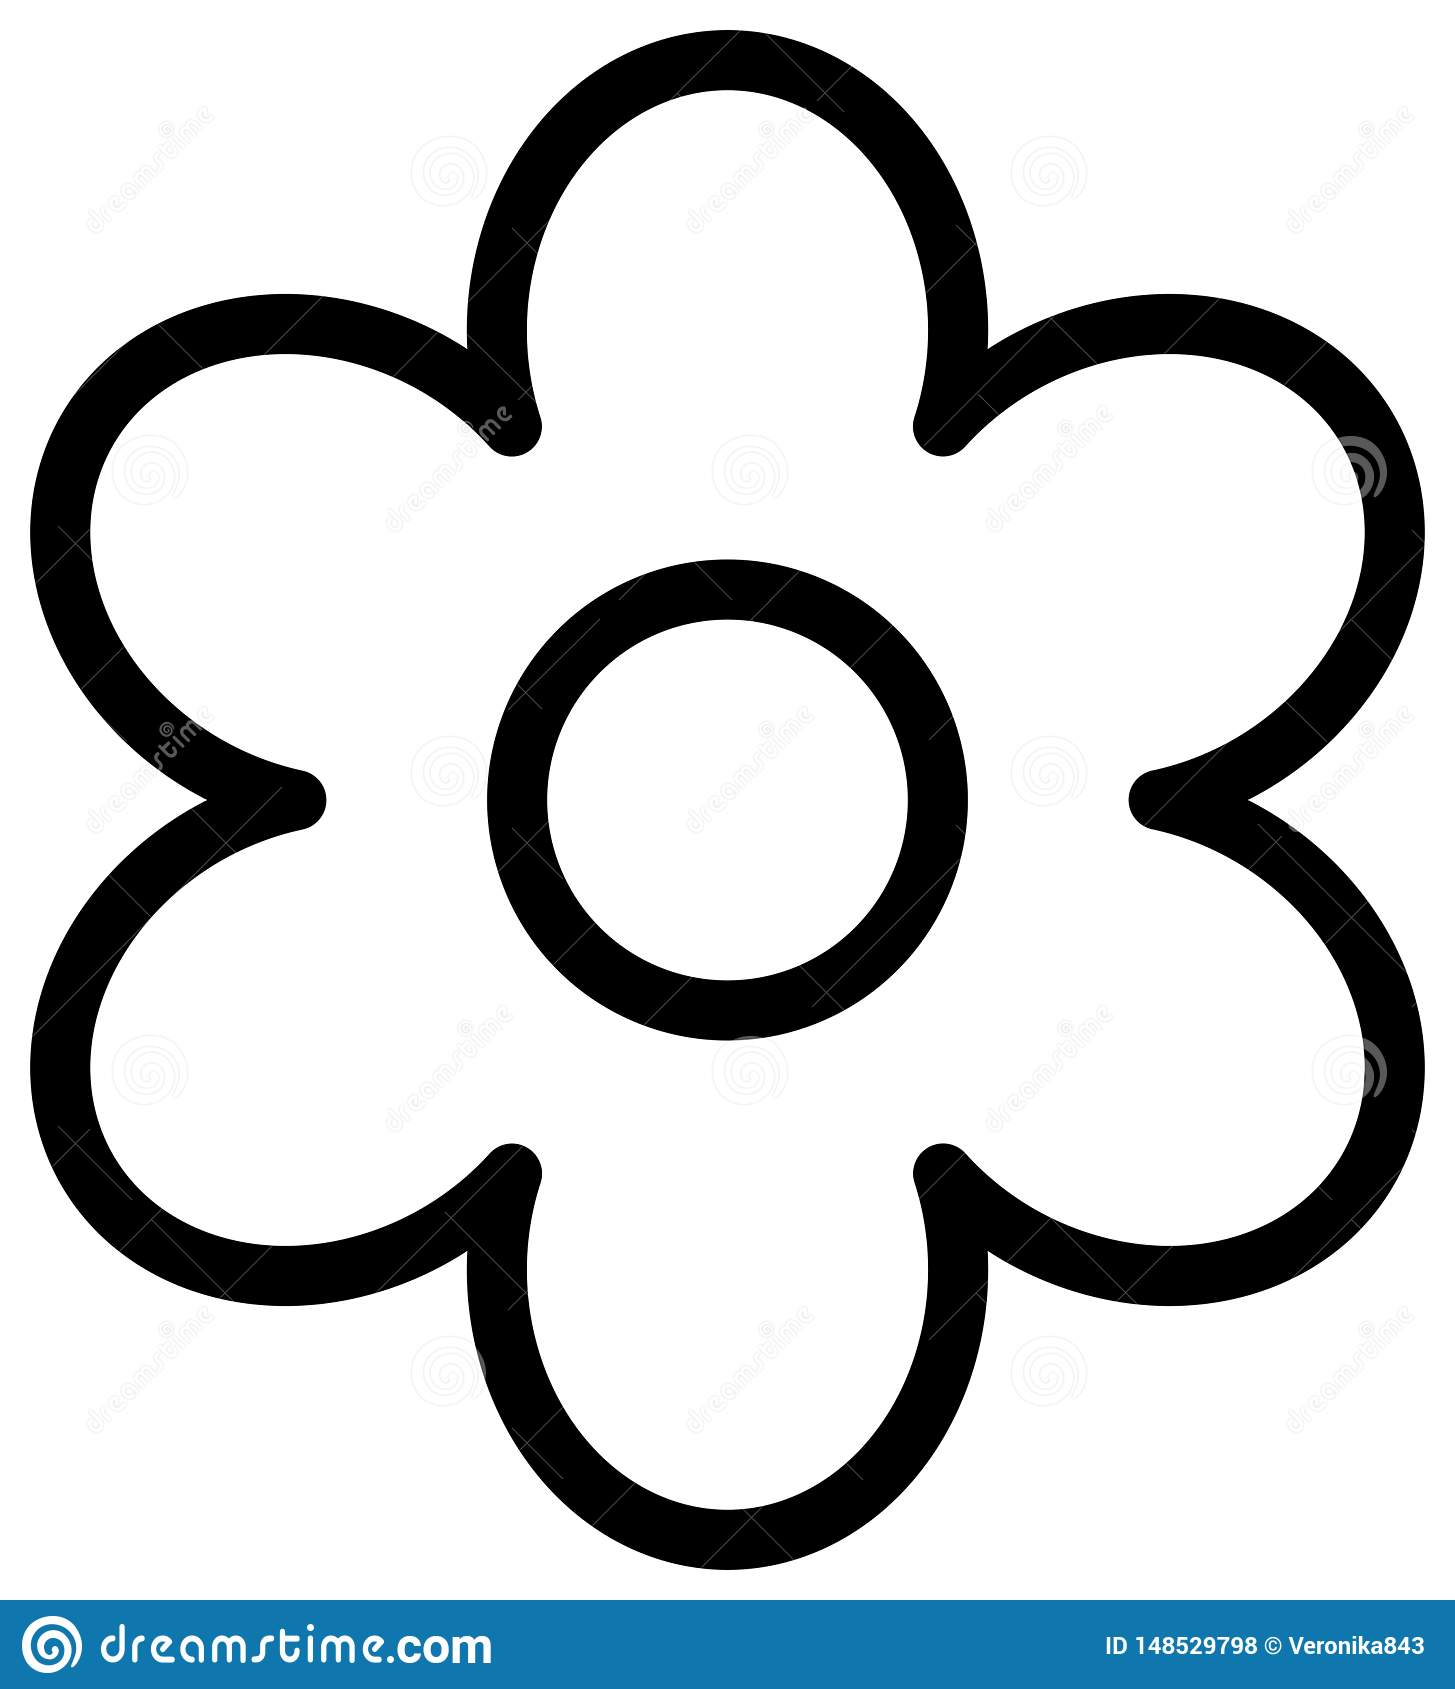 Flower Outline Drawing at PaintingValley.com | Explore